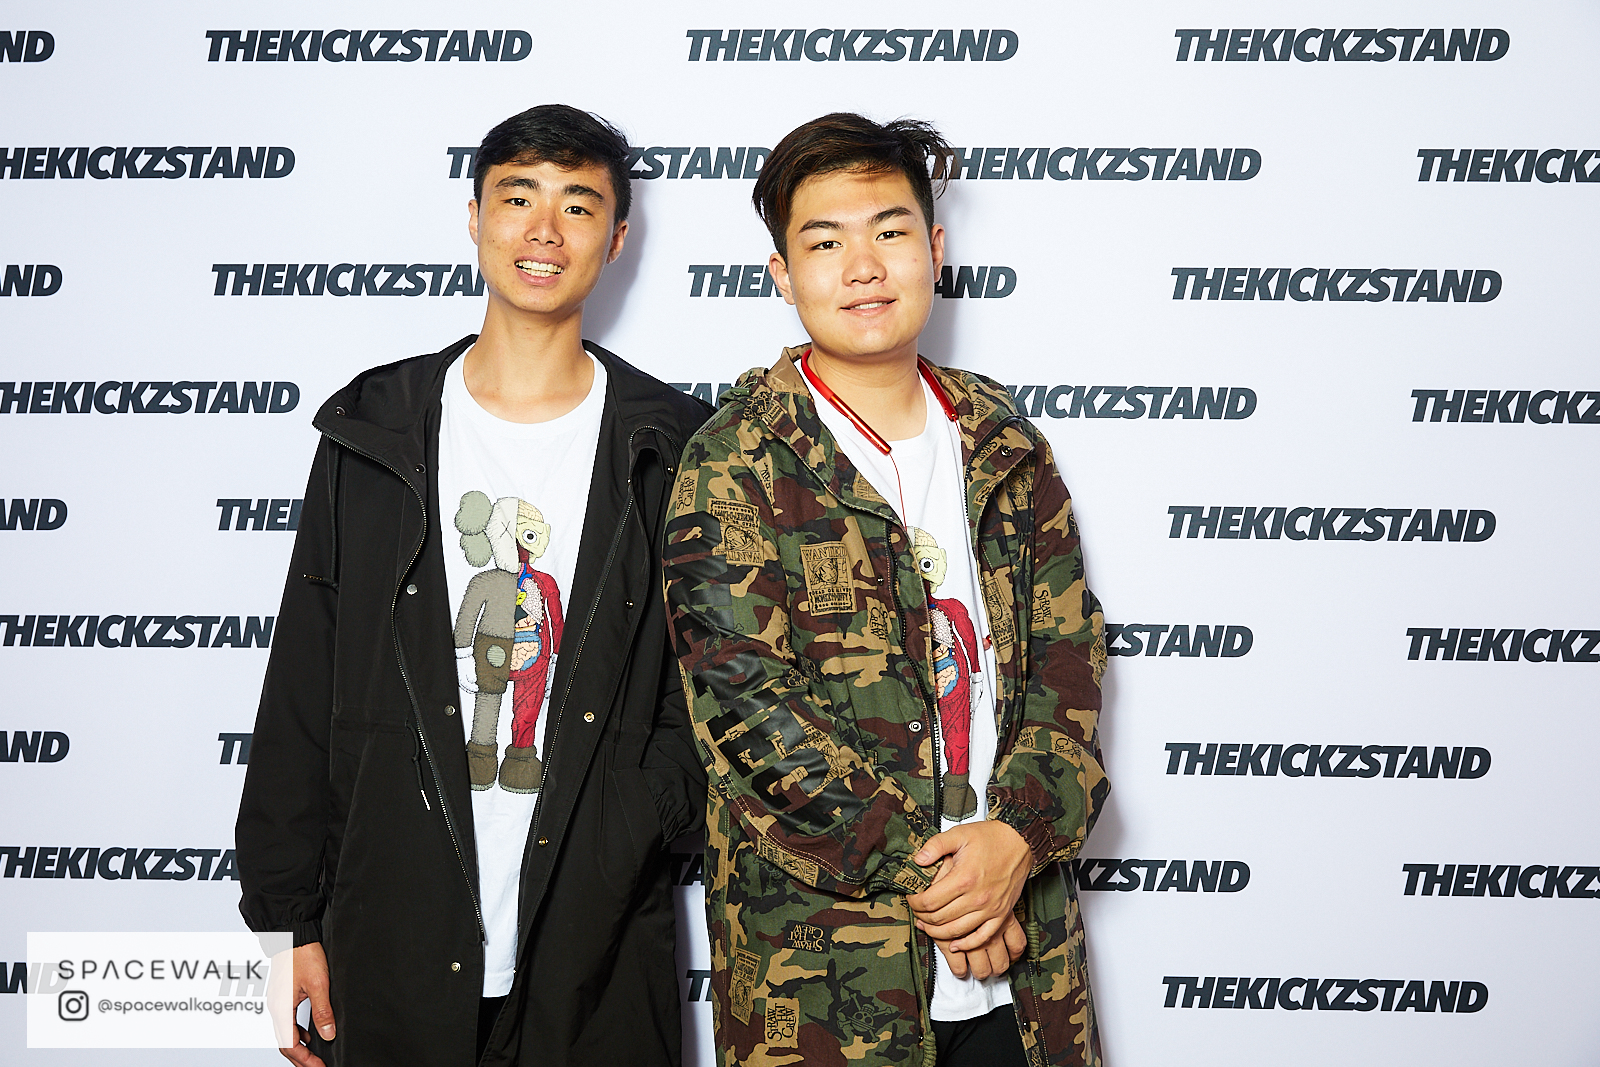 KICKZSTAND_BOOTH_049